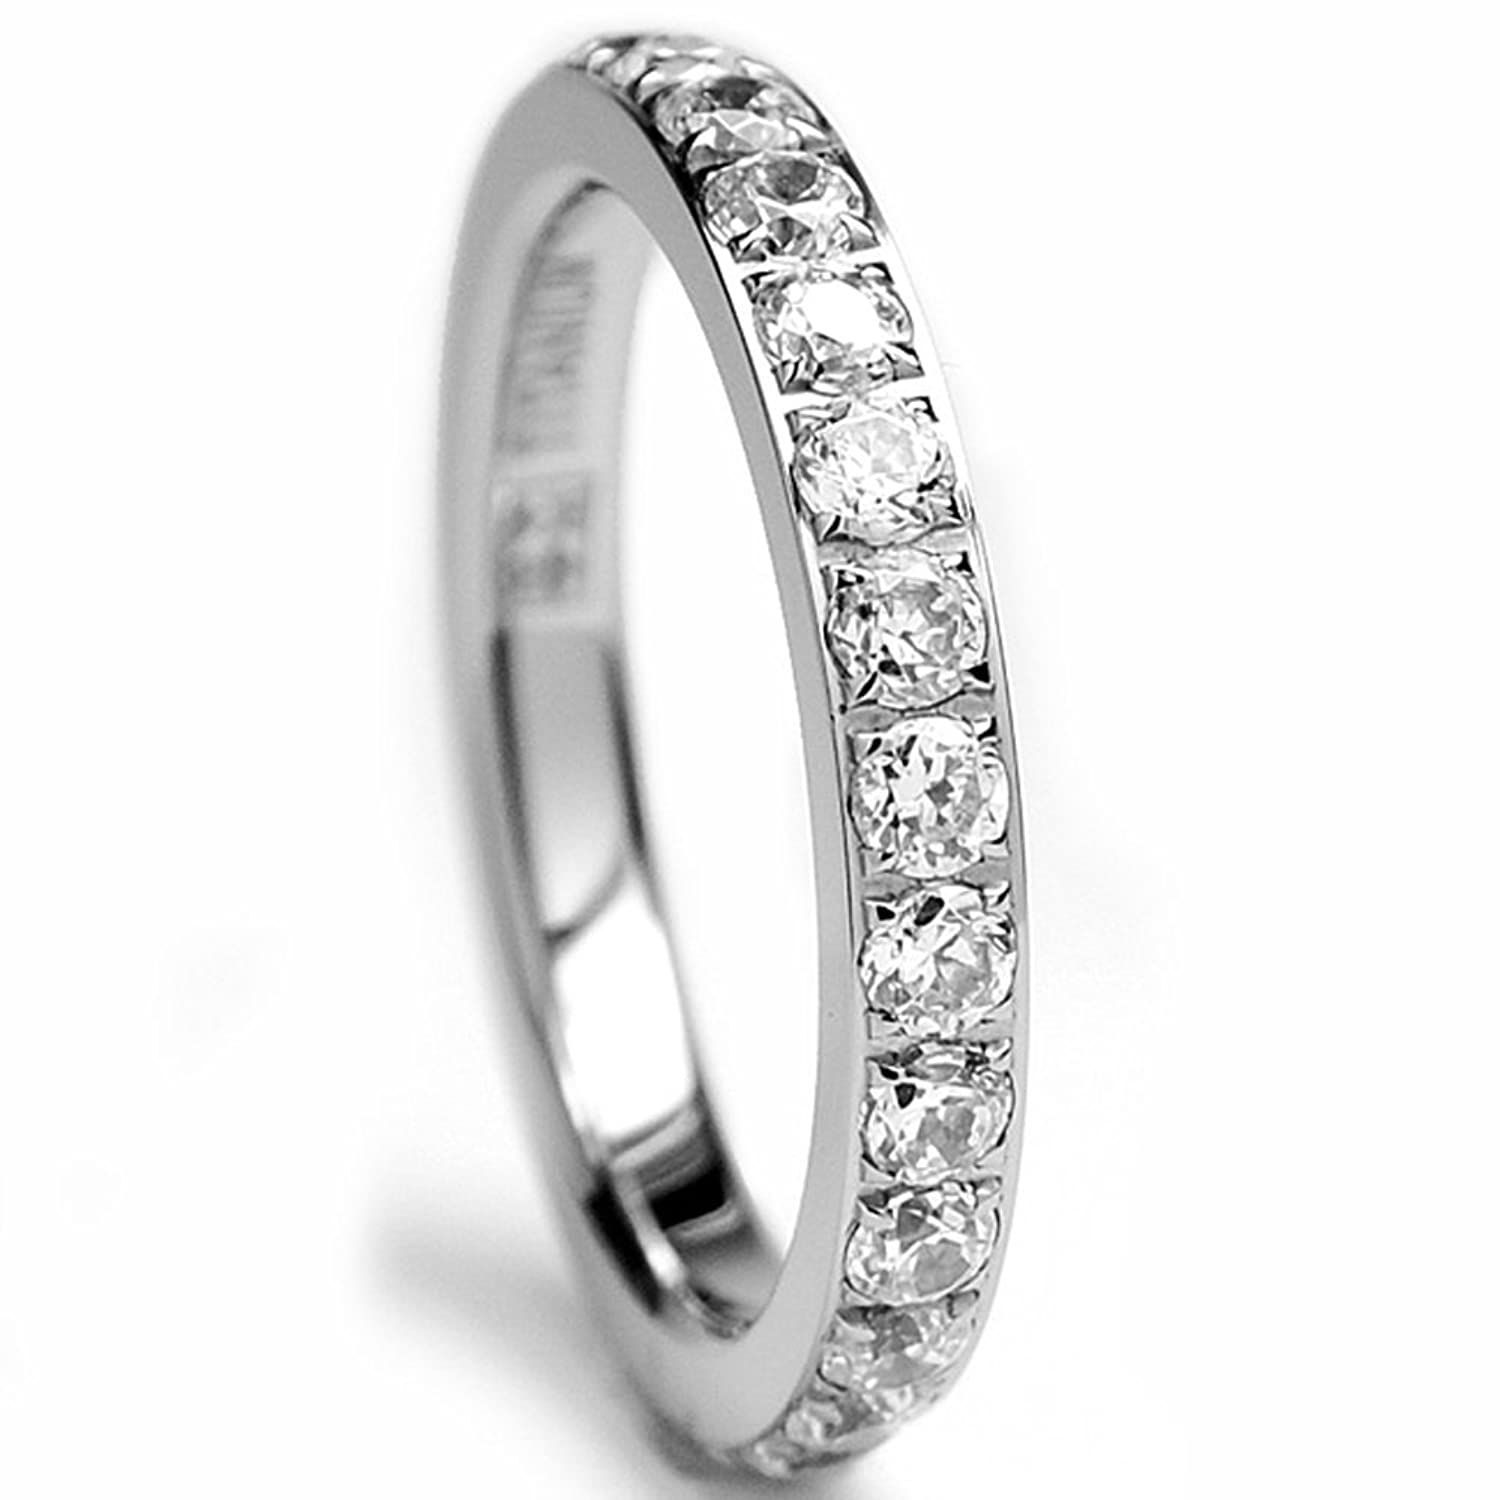 cubic over palm beach silver baguette round eternity bands cz pin sterling palmbeach platinum zirconia tapered jewelry classic and band